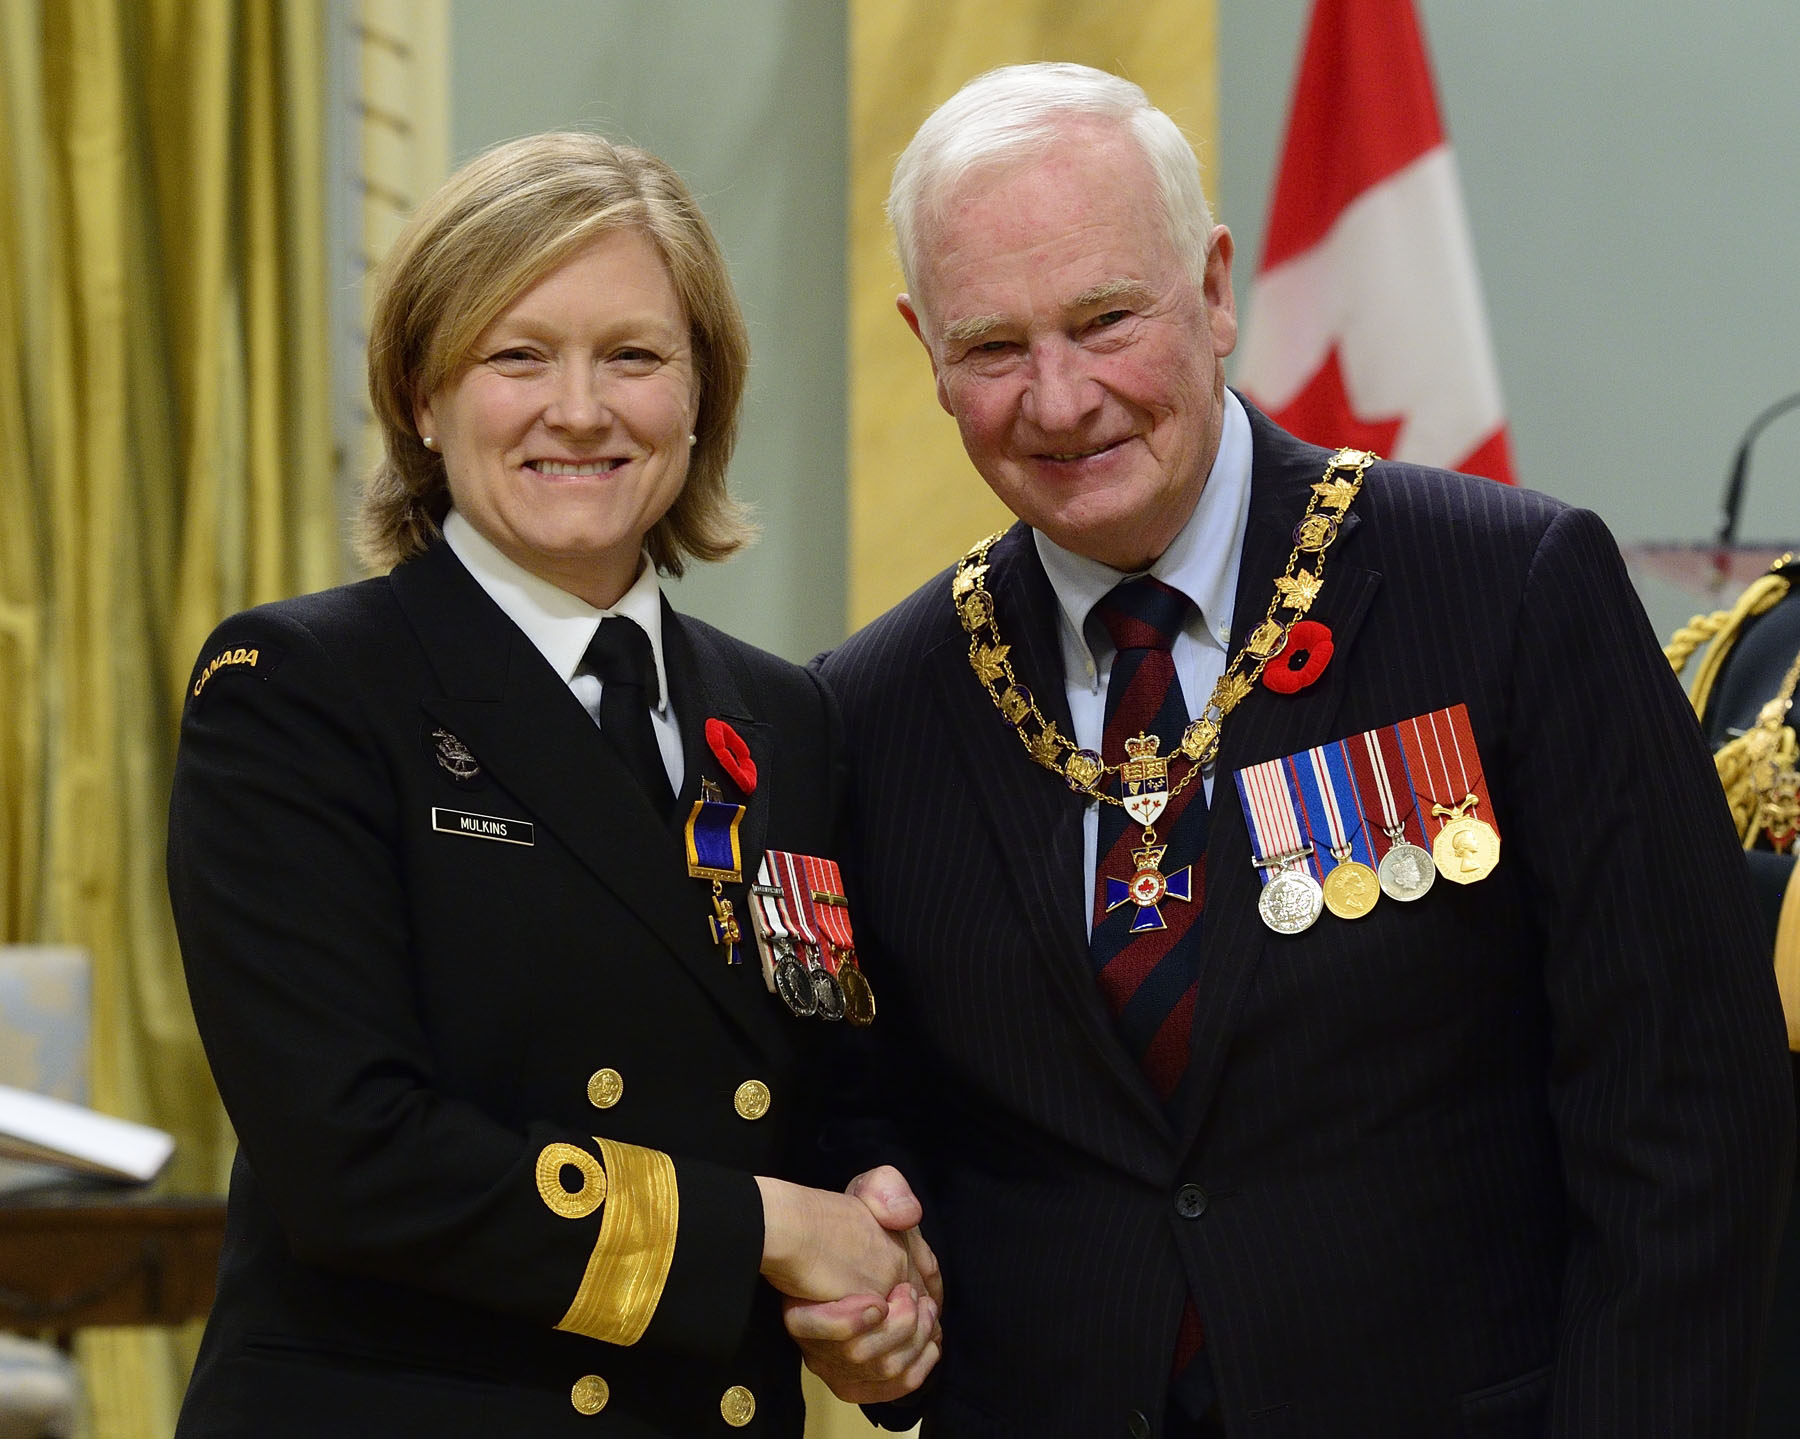 His Excellency presented the Order of Military Merit at the Officer level (O.M.M.) to Captain(N) Marta Beattie Mulkins, O.M.M., C.D., Naval Reserve Headquarters, Québec, Quebec.